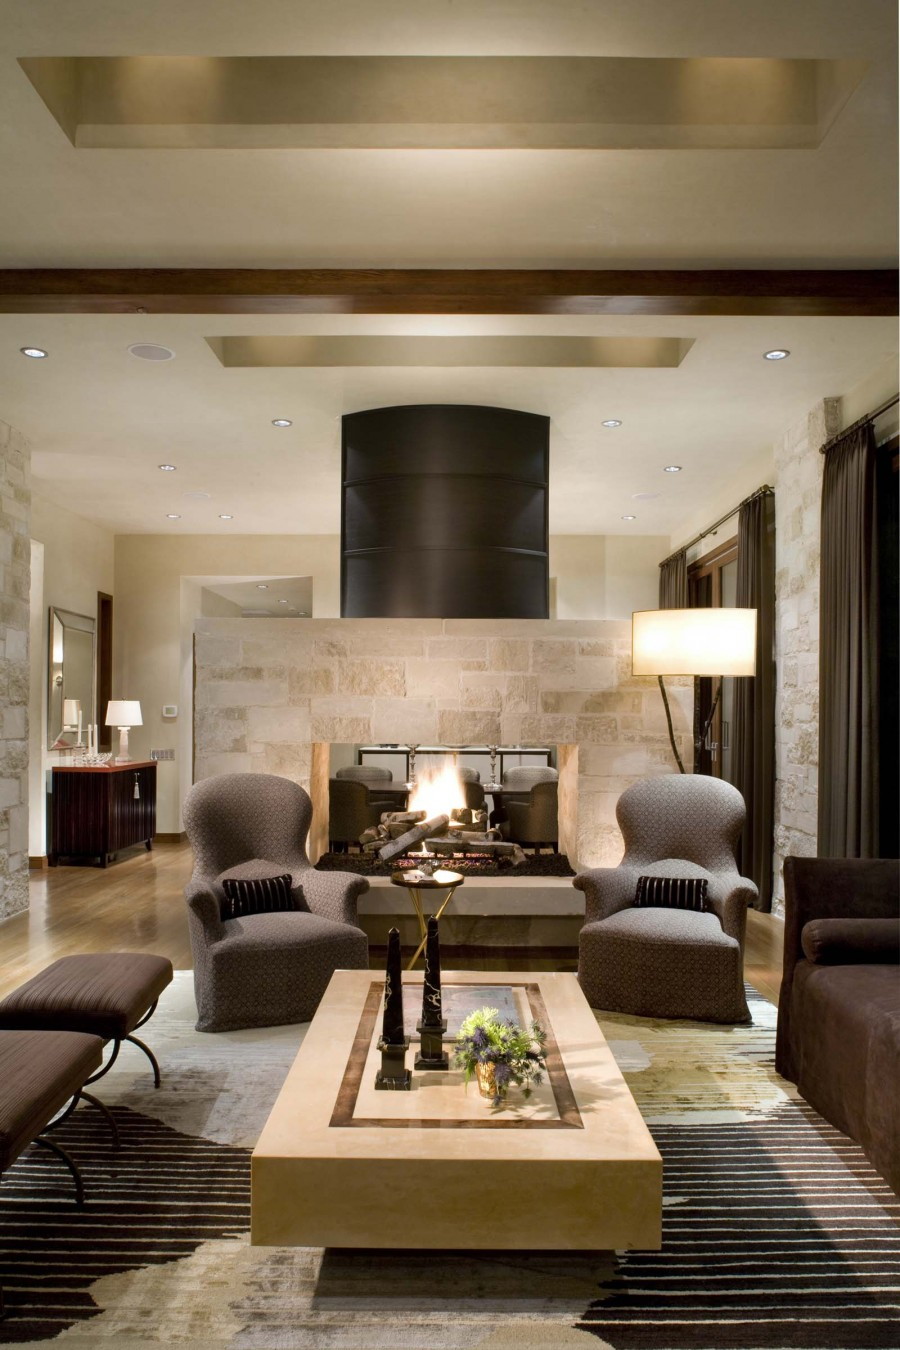 16 fabulous earth tones living room designs decoholic Family room design ideas with fireplace